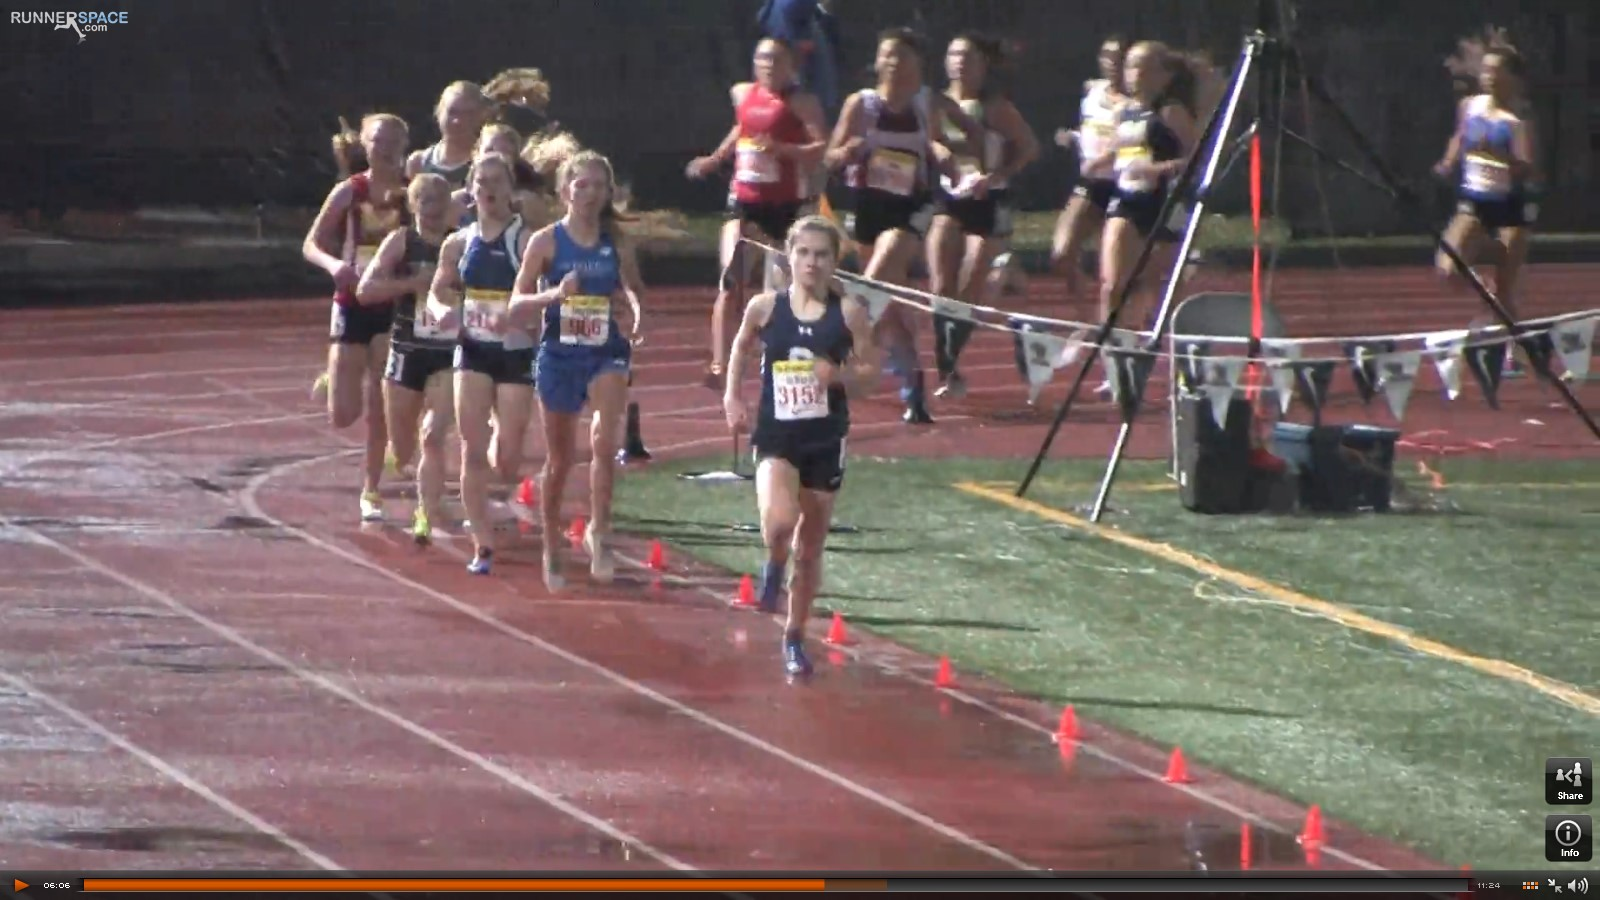 Around 6 minutes into the race Rylee moves up to the back of the lead pack.